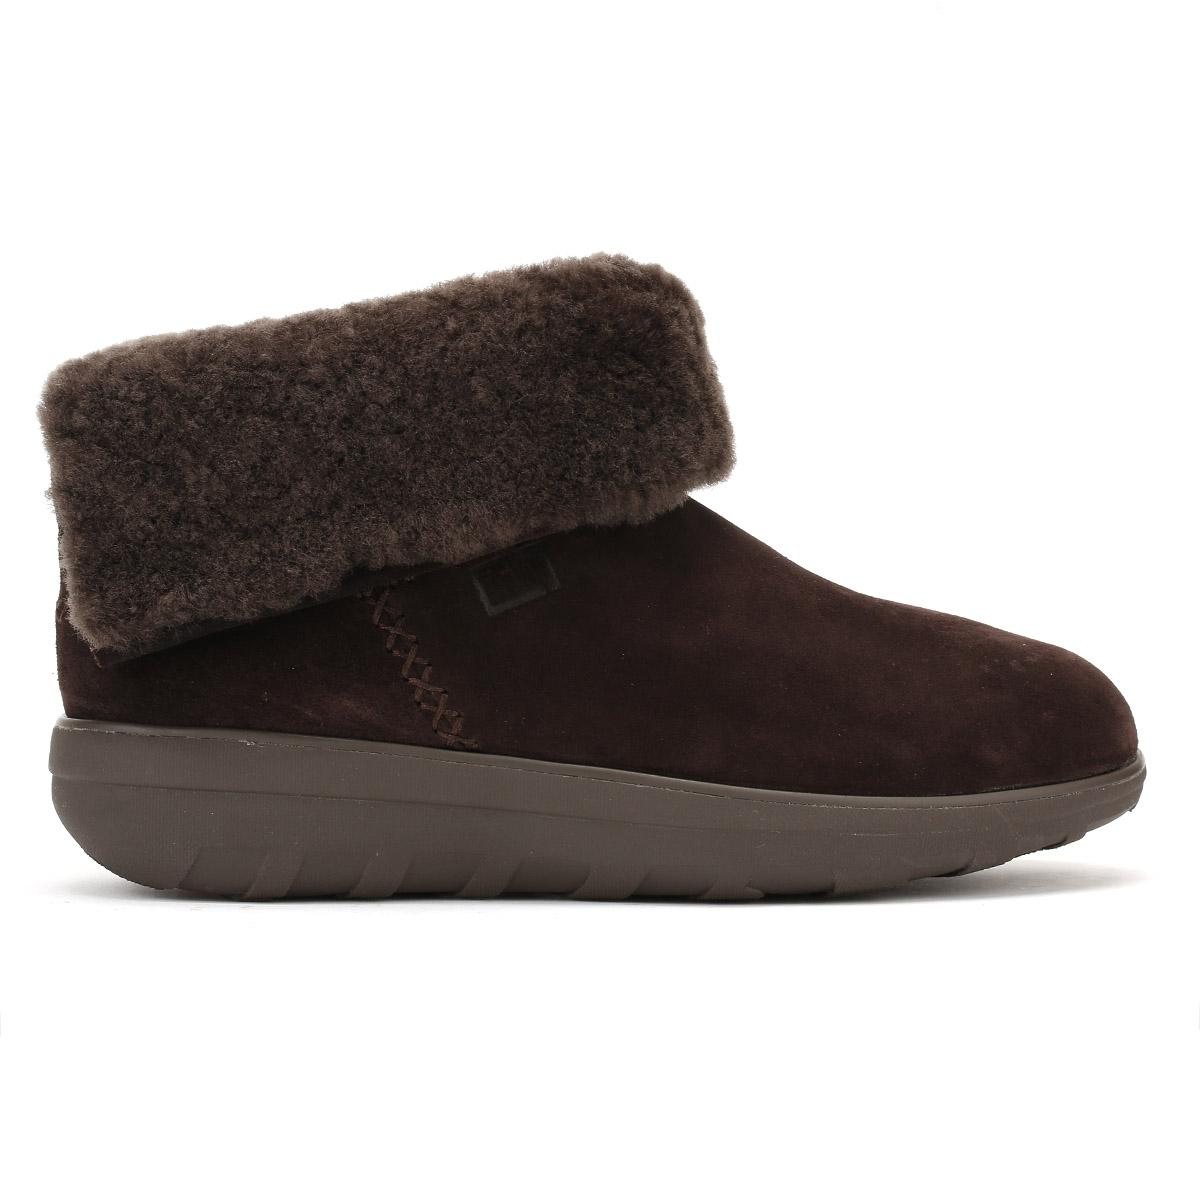 b3e0f92d741eb1 Fitflop Womens Chocolate Dark Brown Mukluk Shorty Ii Boots in Brown ...